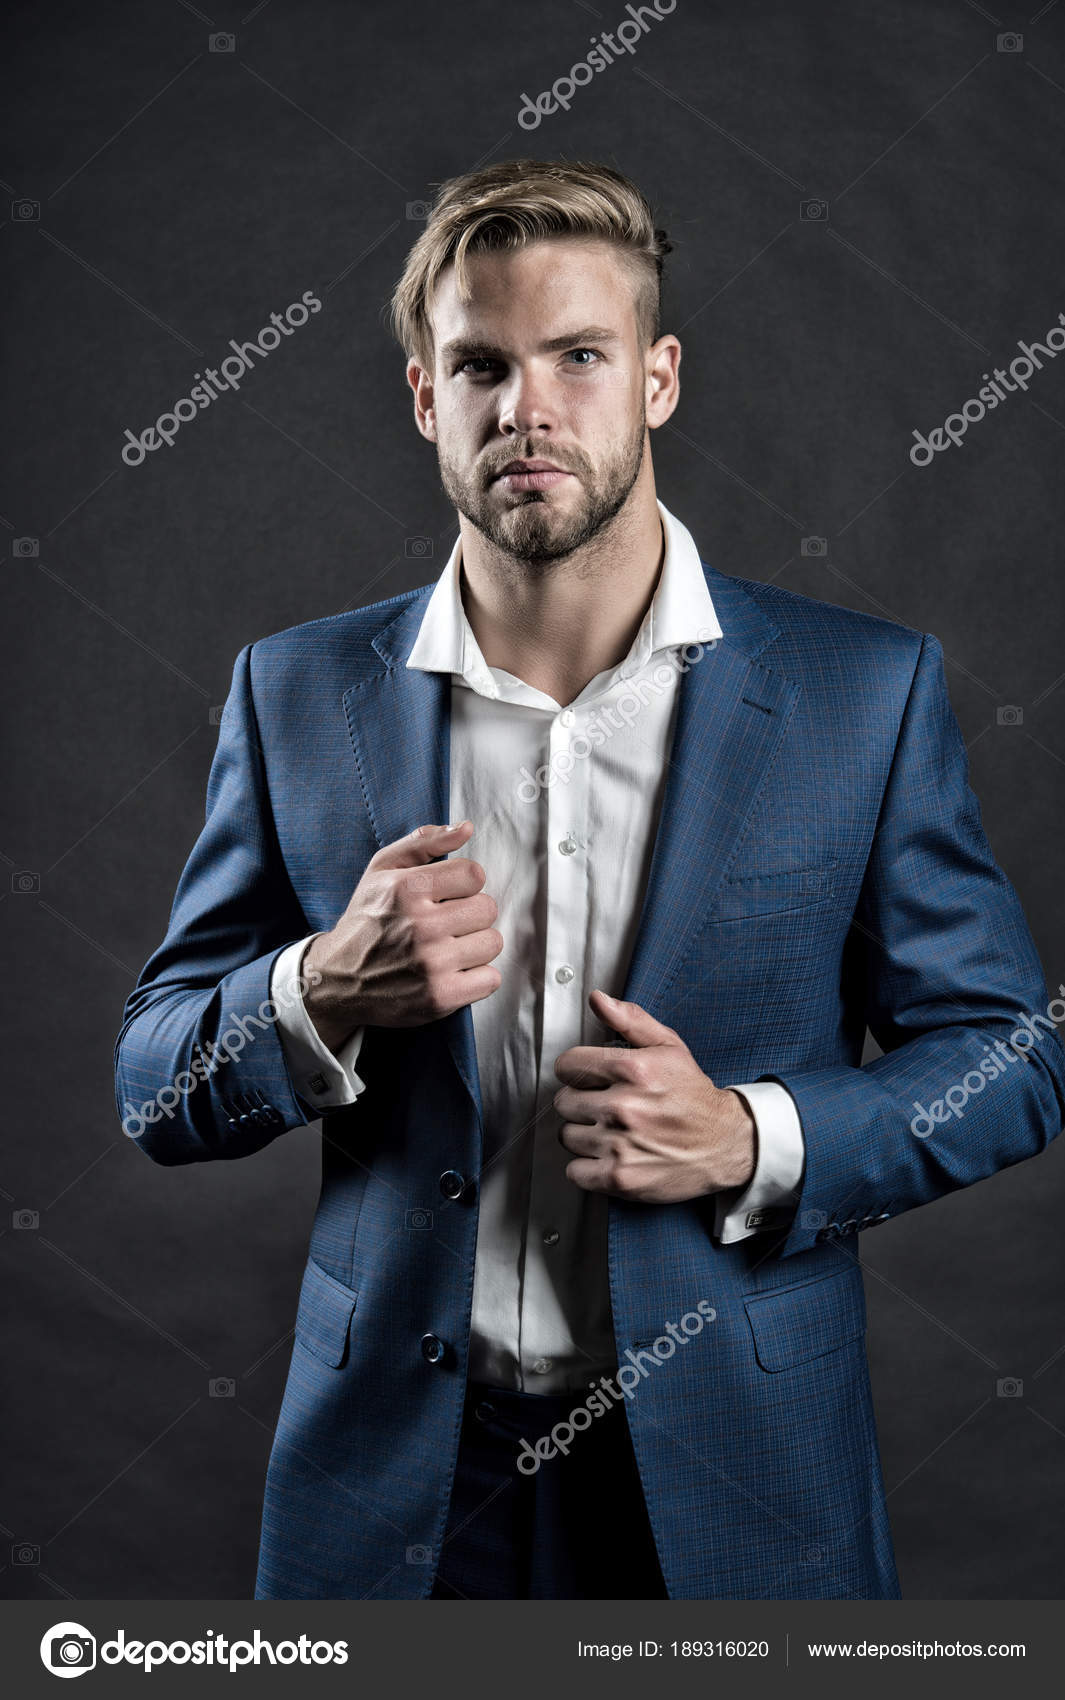 Businessman With Unshaven Face Hair Haircut Stock Photo